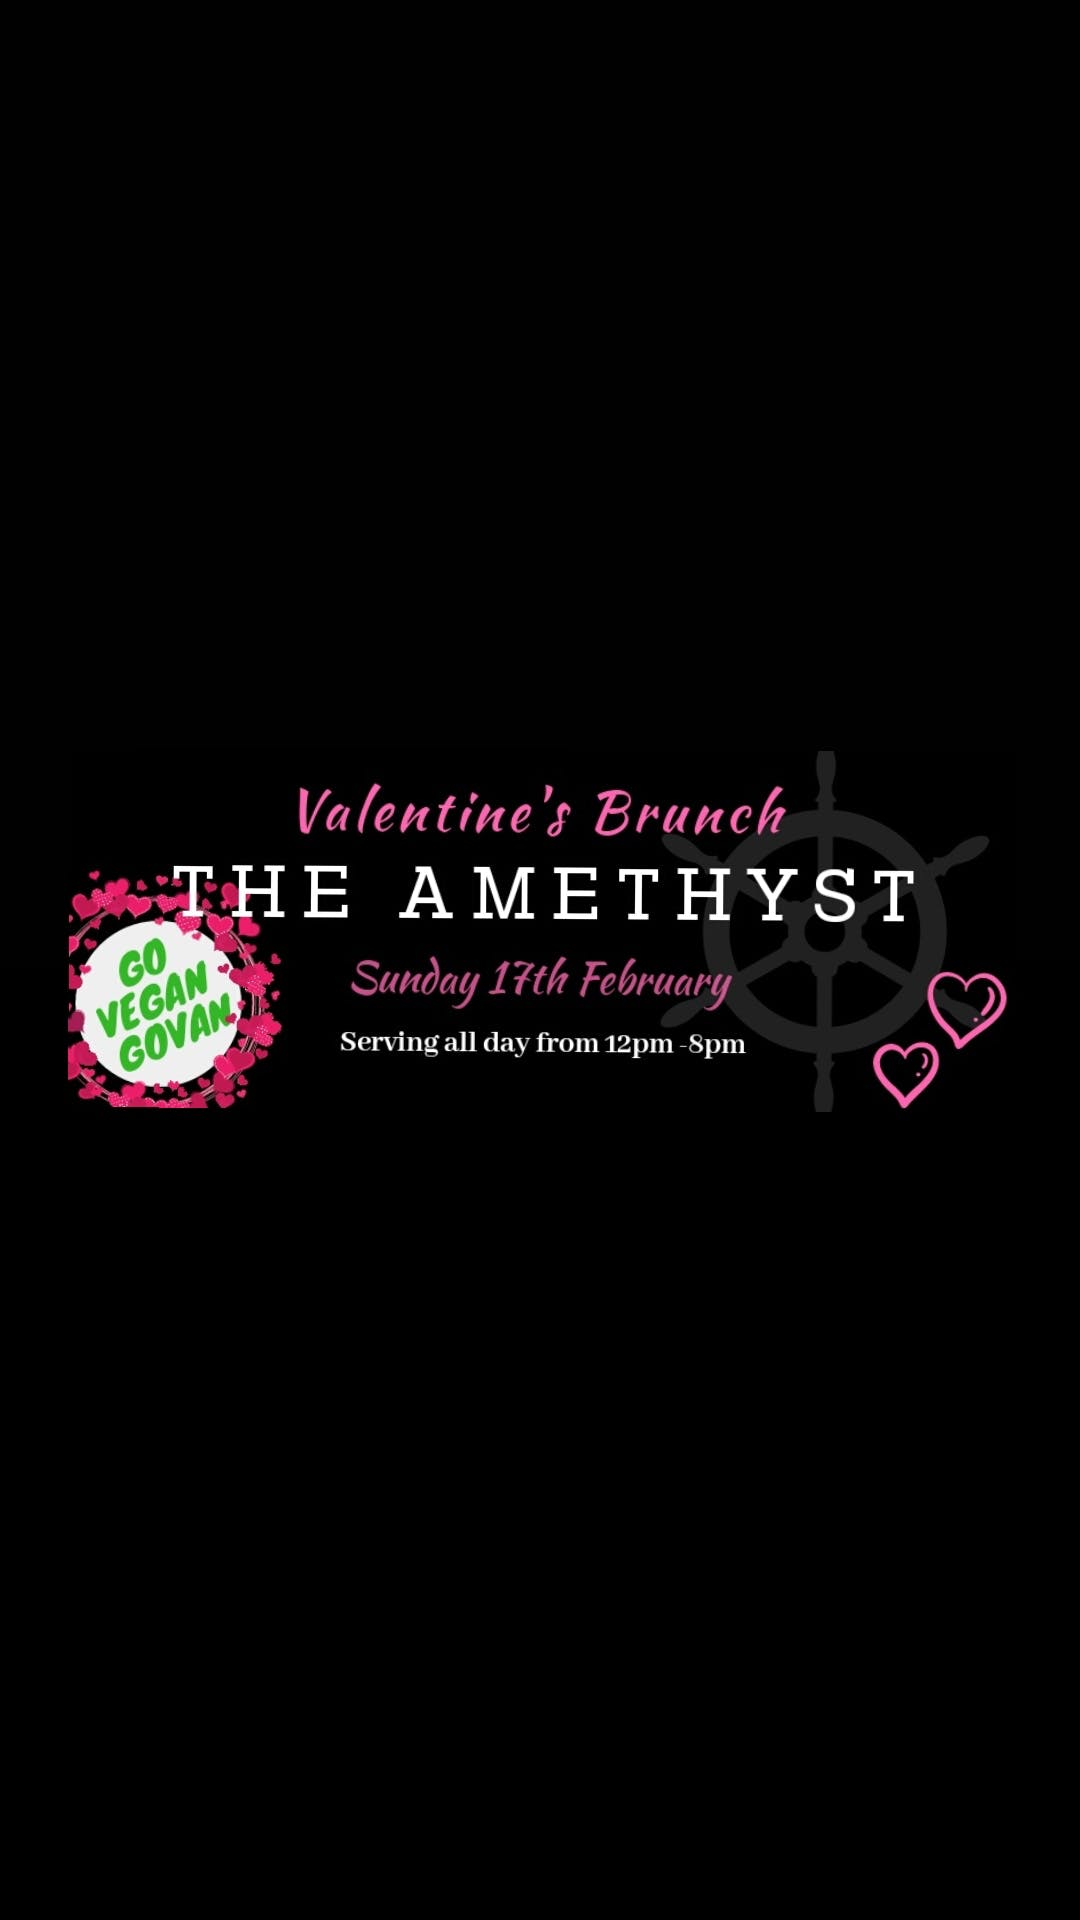 Valentine's All Day Brunch @ The Amethyst